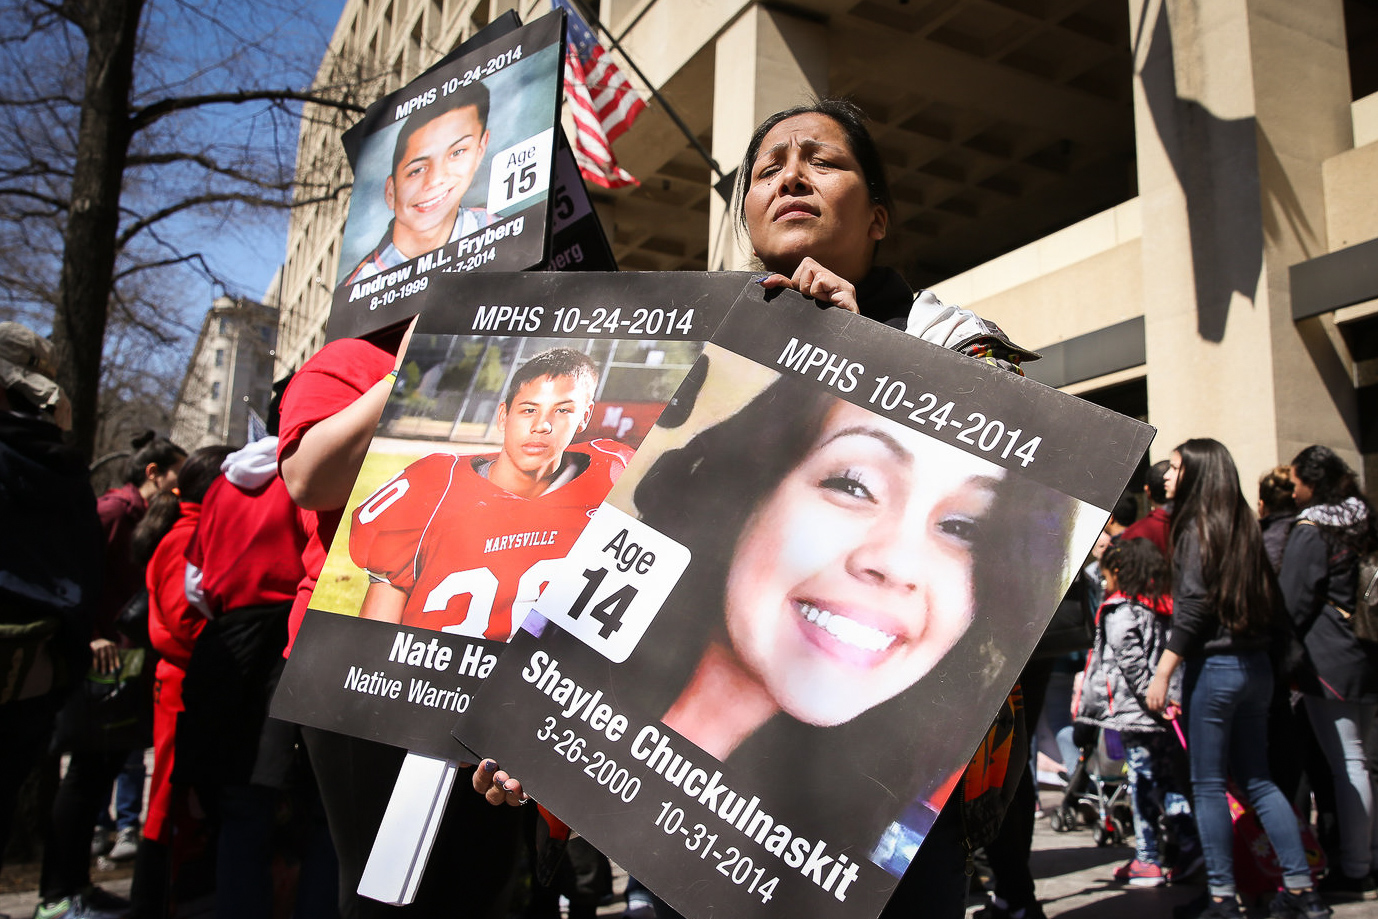 Members of the Tulalip tribe hold up memorials for students killed at the Marysville Pilchuck High School shooting in 2014 at the March for Our Lives in Washington, D.C. (Amanda Andrade-Rhoades/DC Refined)